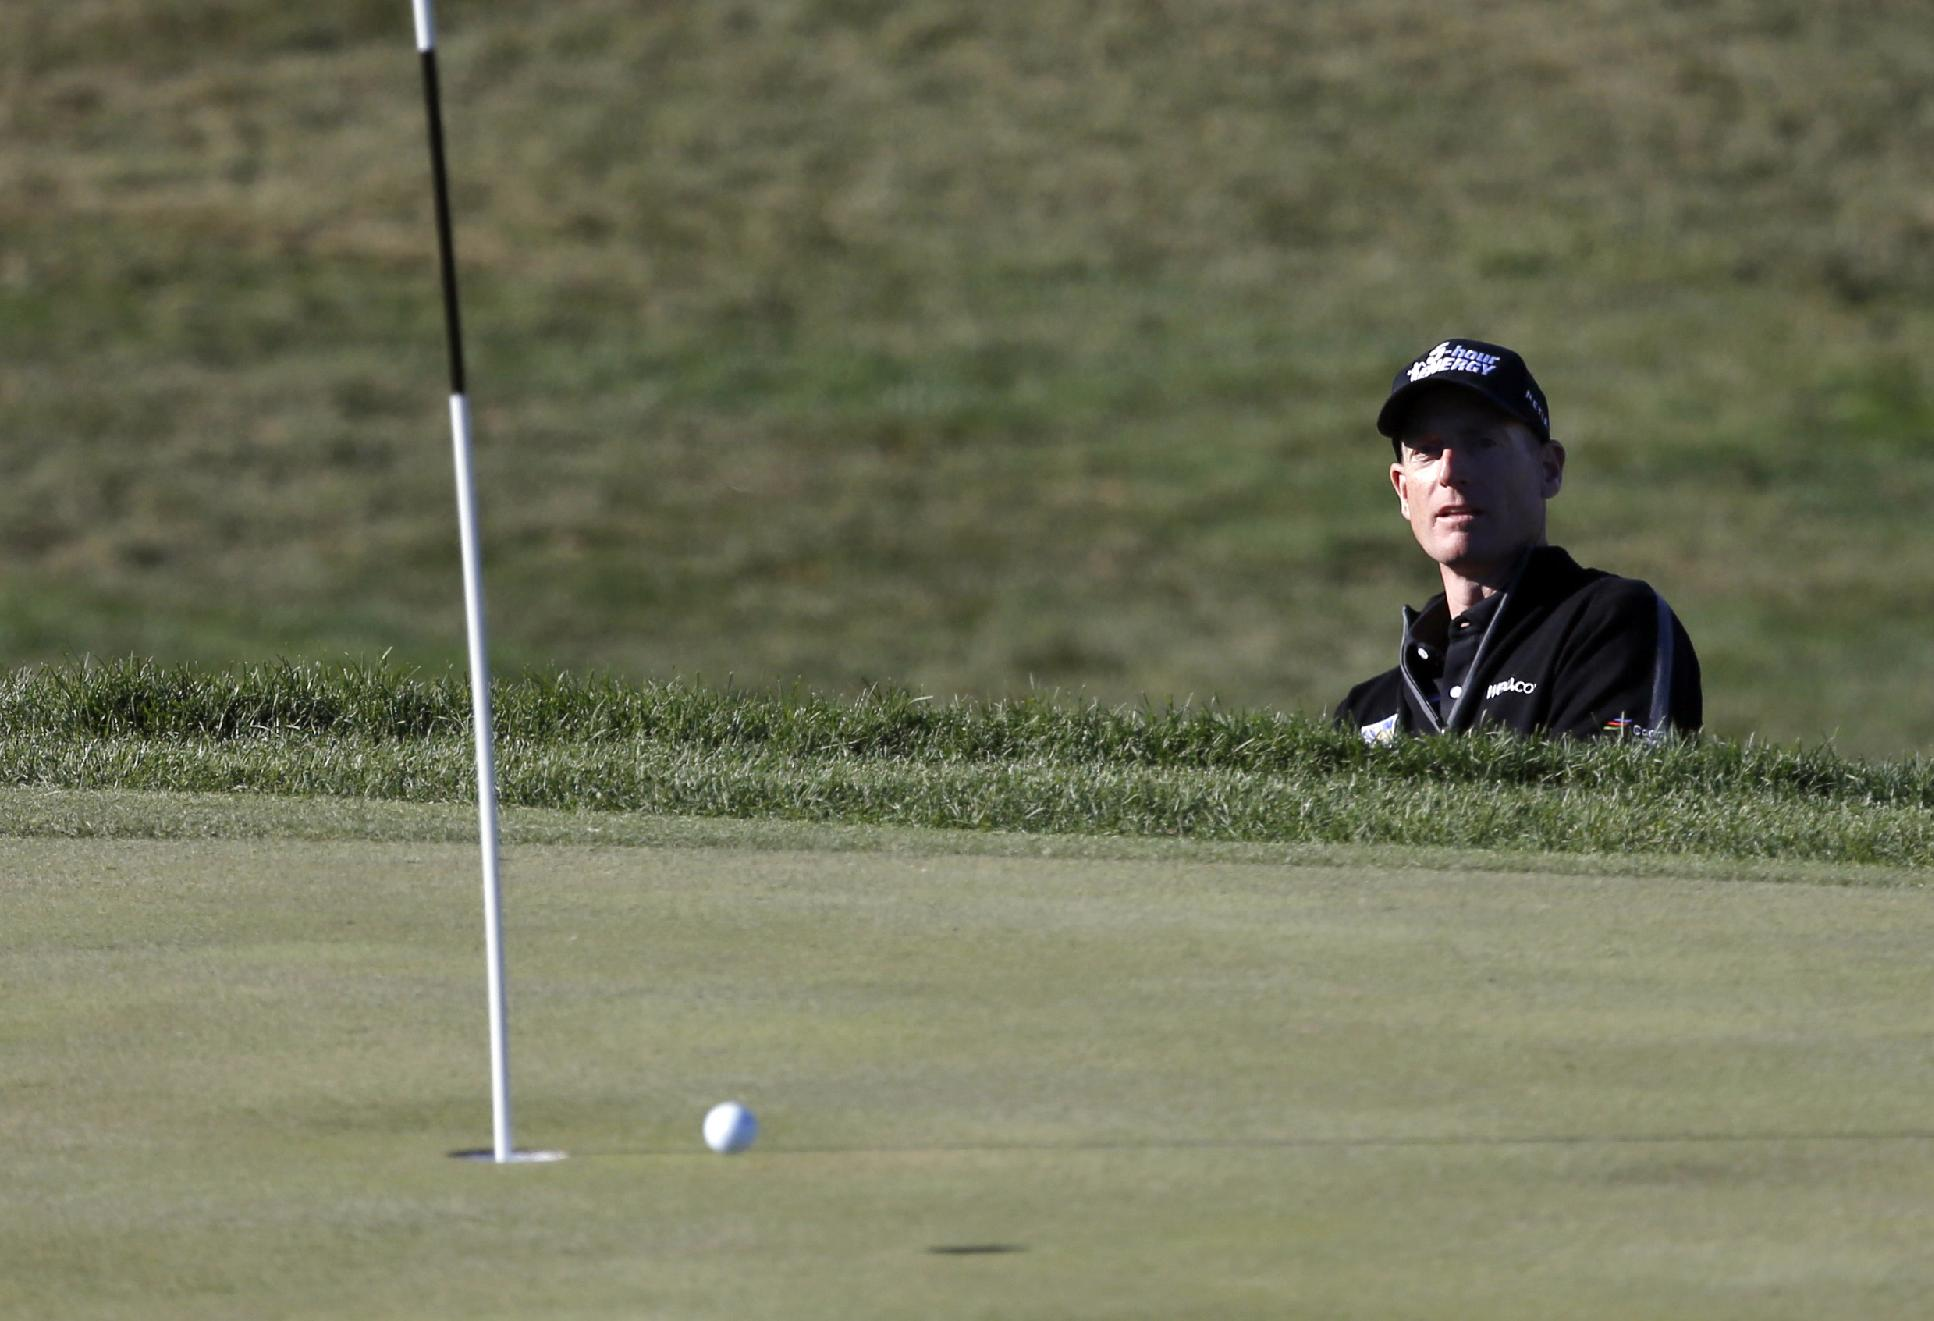 Jim Furyk watches his chip shot to the eighth green during the second round of the BMW Championship golf tournament at Conway Farms Golf Club in Lake Forest, Ill., Friday, Sept. 13, 2013. Furyk posted a single round 59, tying the PGA Tour record